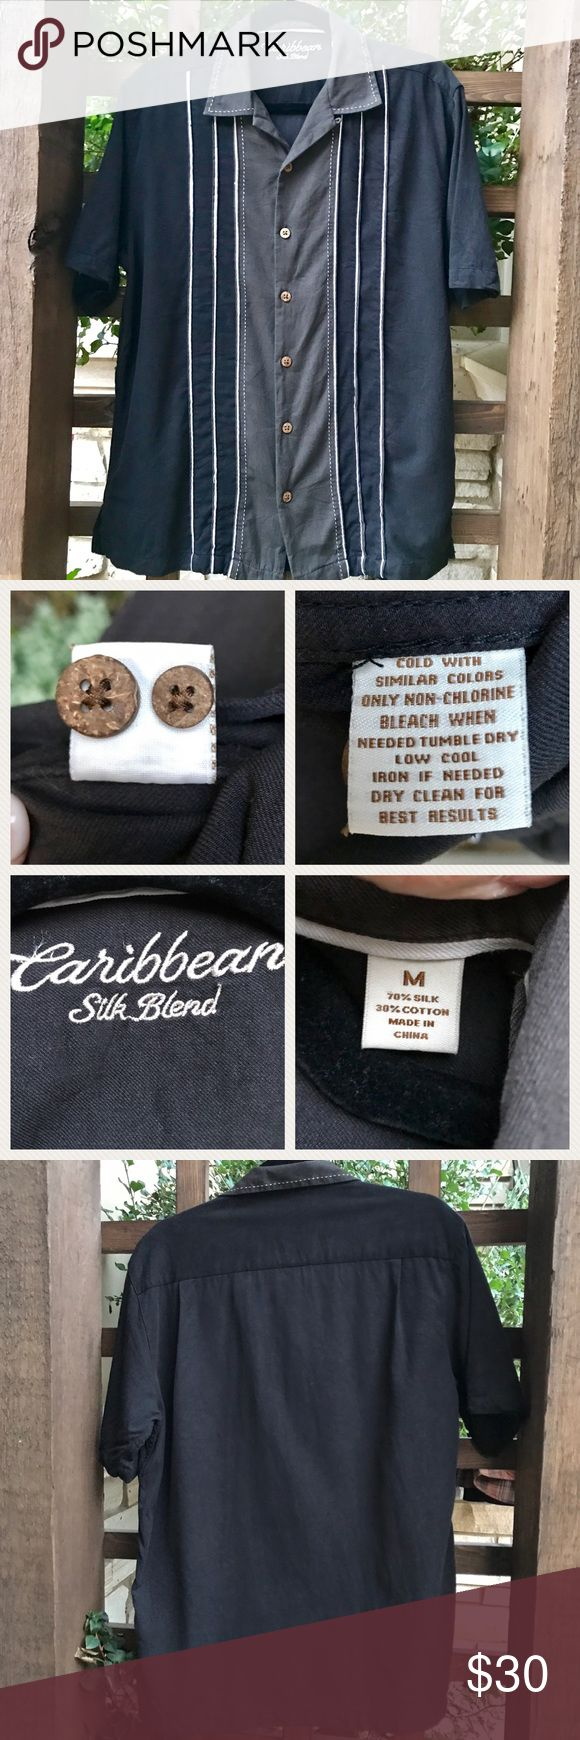 """Men's """"COOL"""" Caribbean Silk Blend Shirt NWOT Super Lightweight Retro Black Caribbean Silk Blend Shirt. NWOT. Size Med. Unique detailed stitching! Caribbean Shirts Casual Button Down Shirts"""